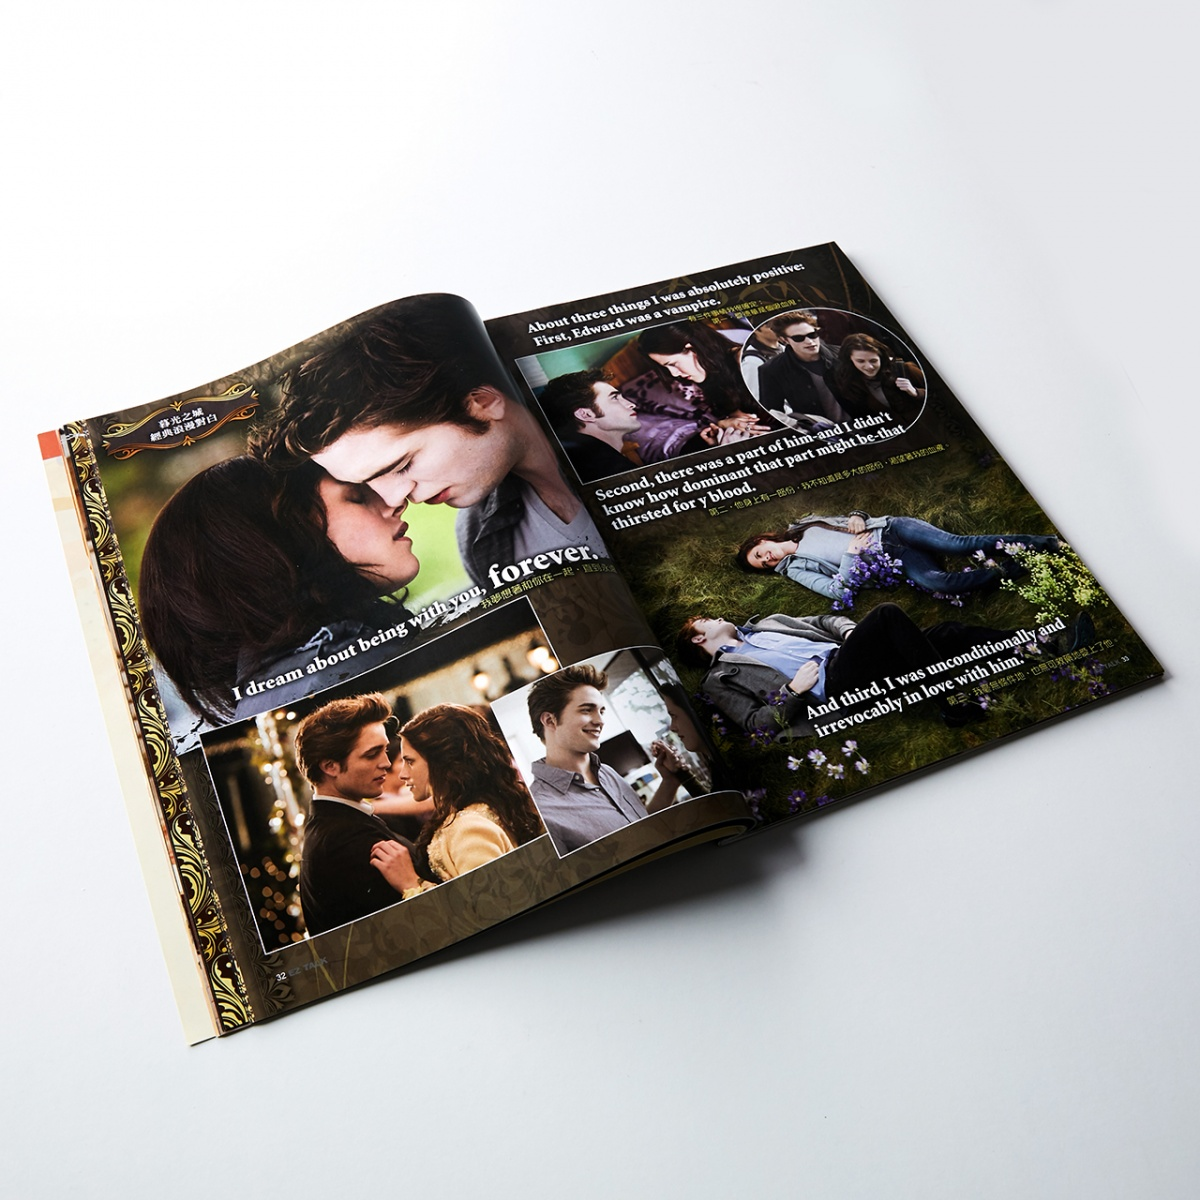 Robert Pattinson as Twilight character over story layout design on magazine public in Taiwan in 2011